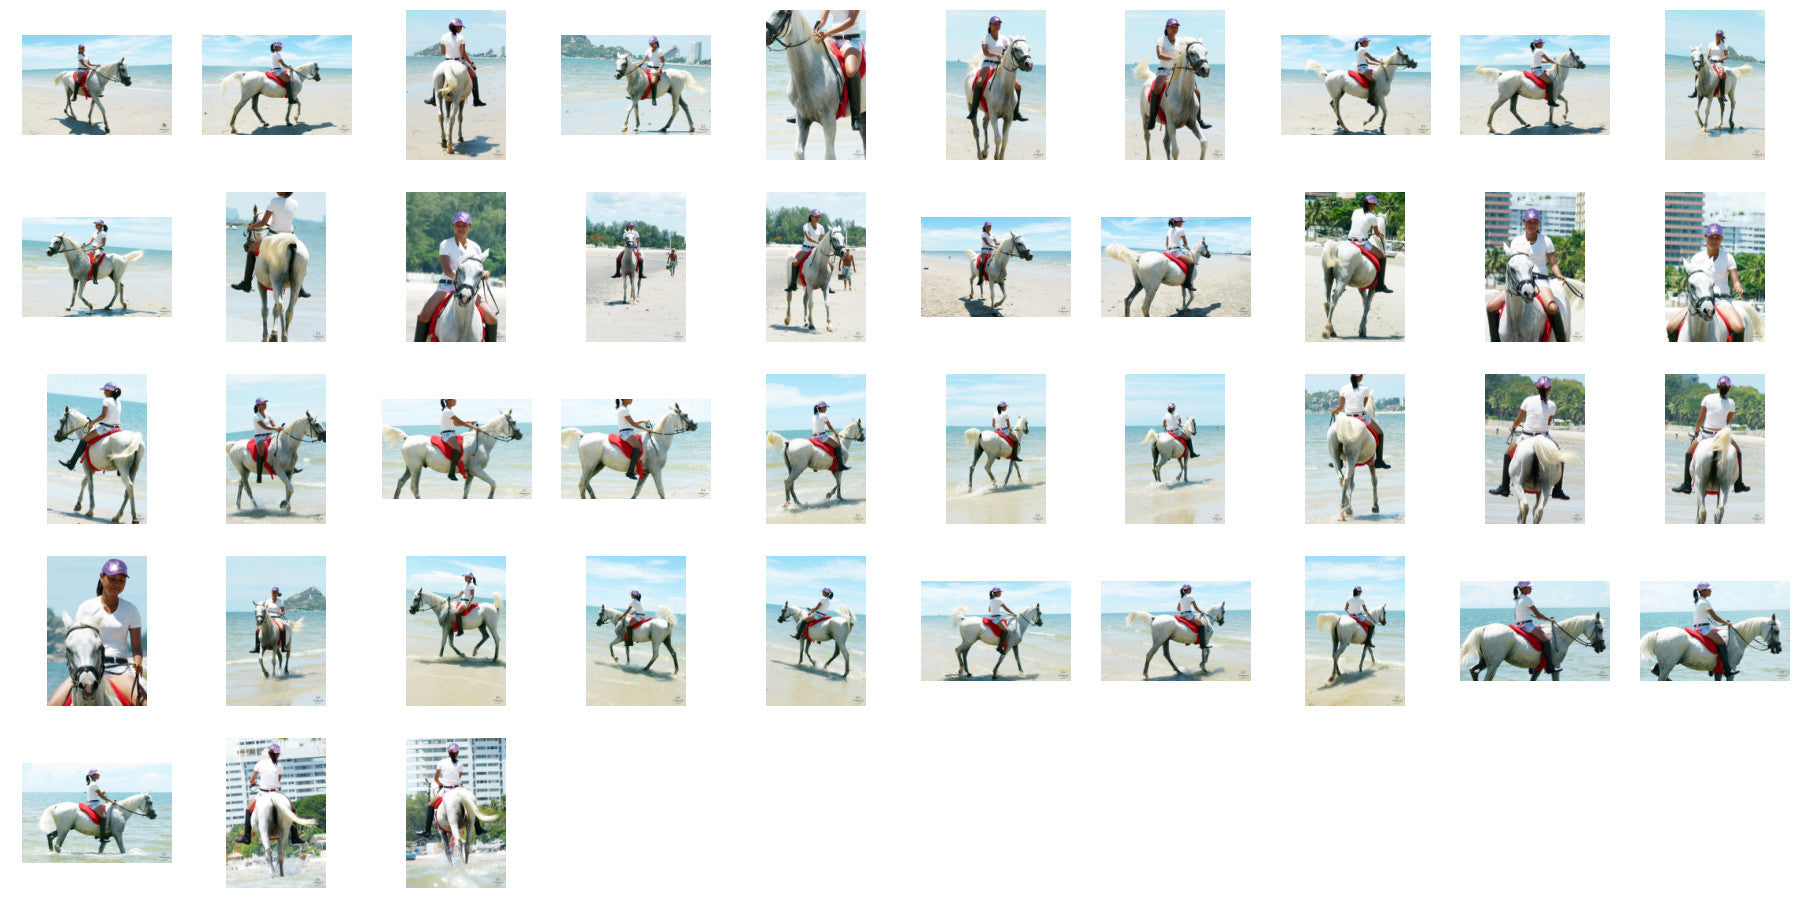 Titaporn in Hotpants and Ridingboots Riding Bareback on Arabian Horse, Part 5 - Riding.Vision